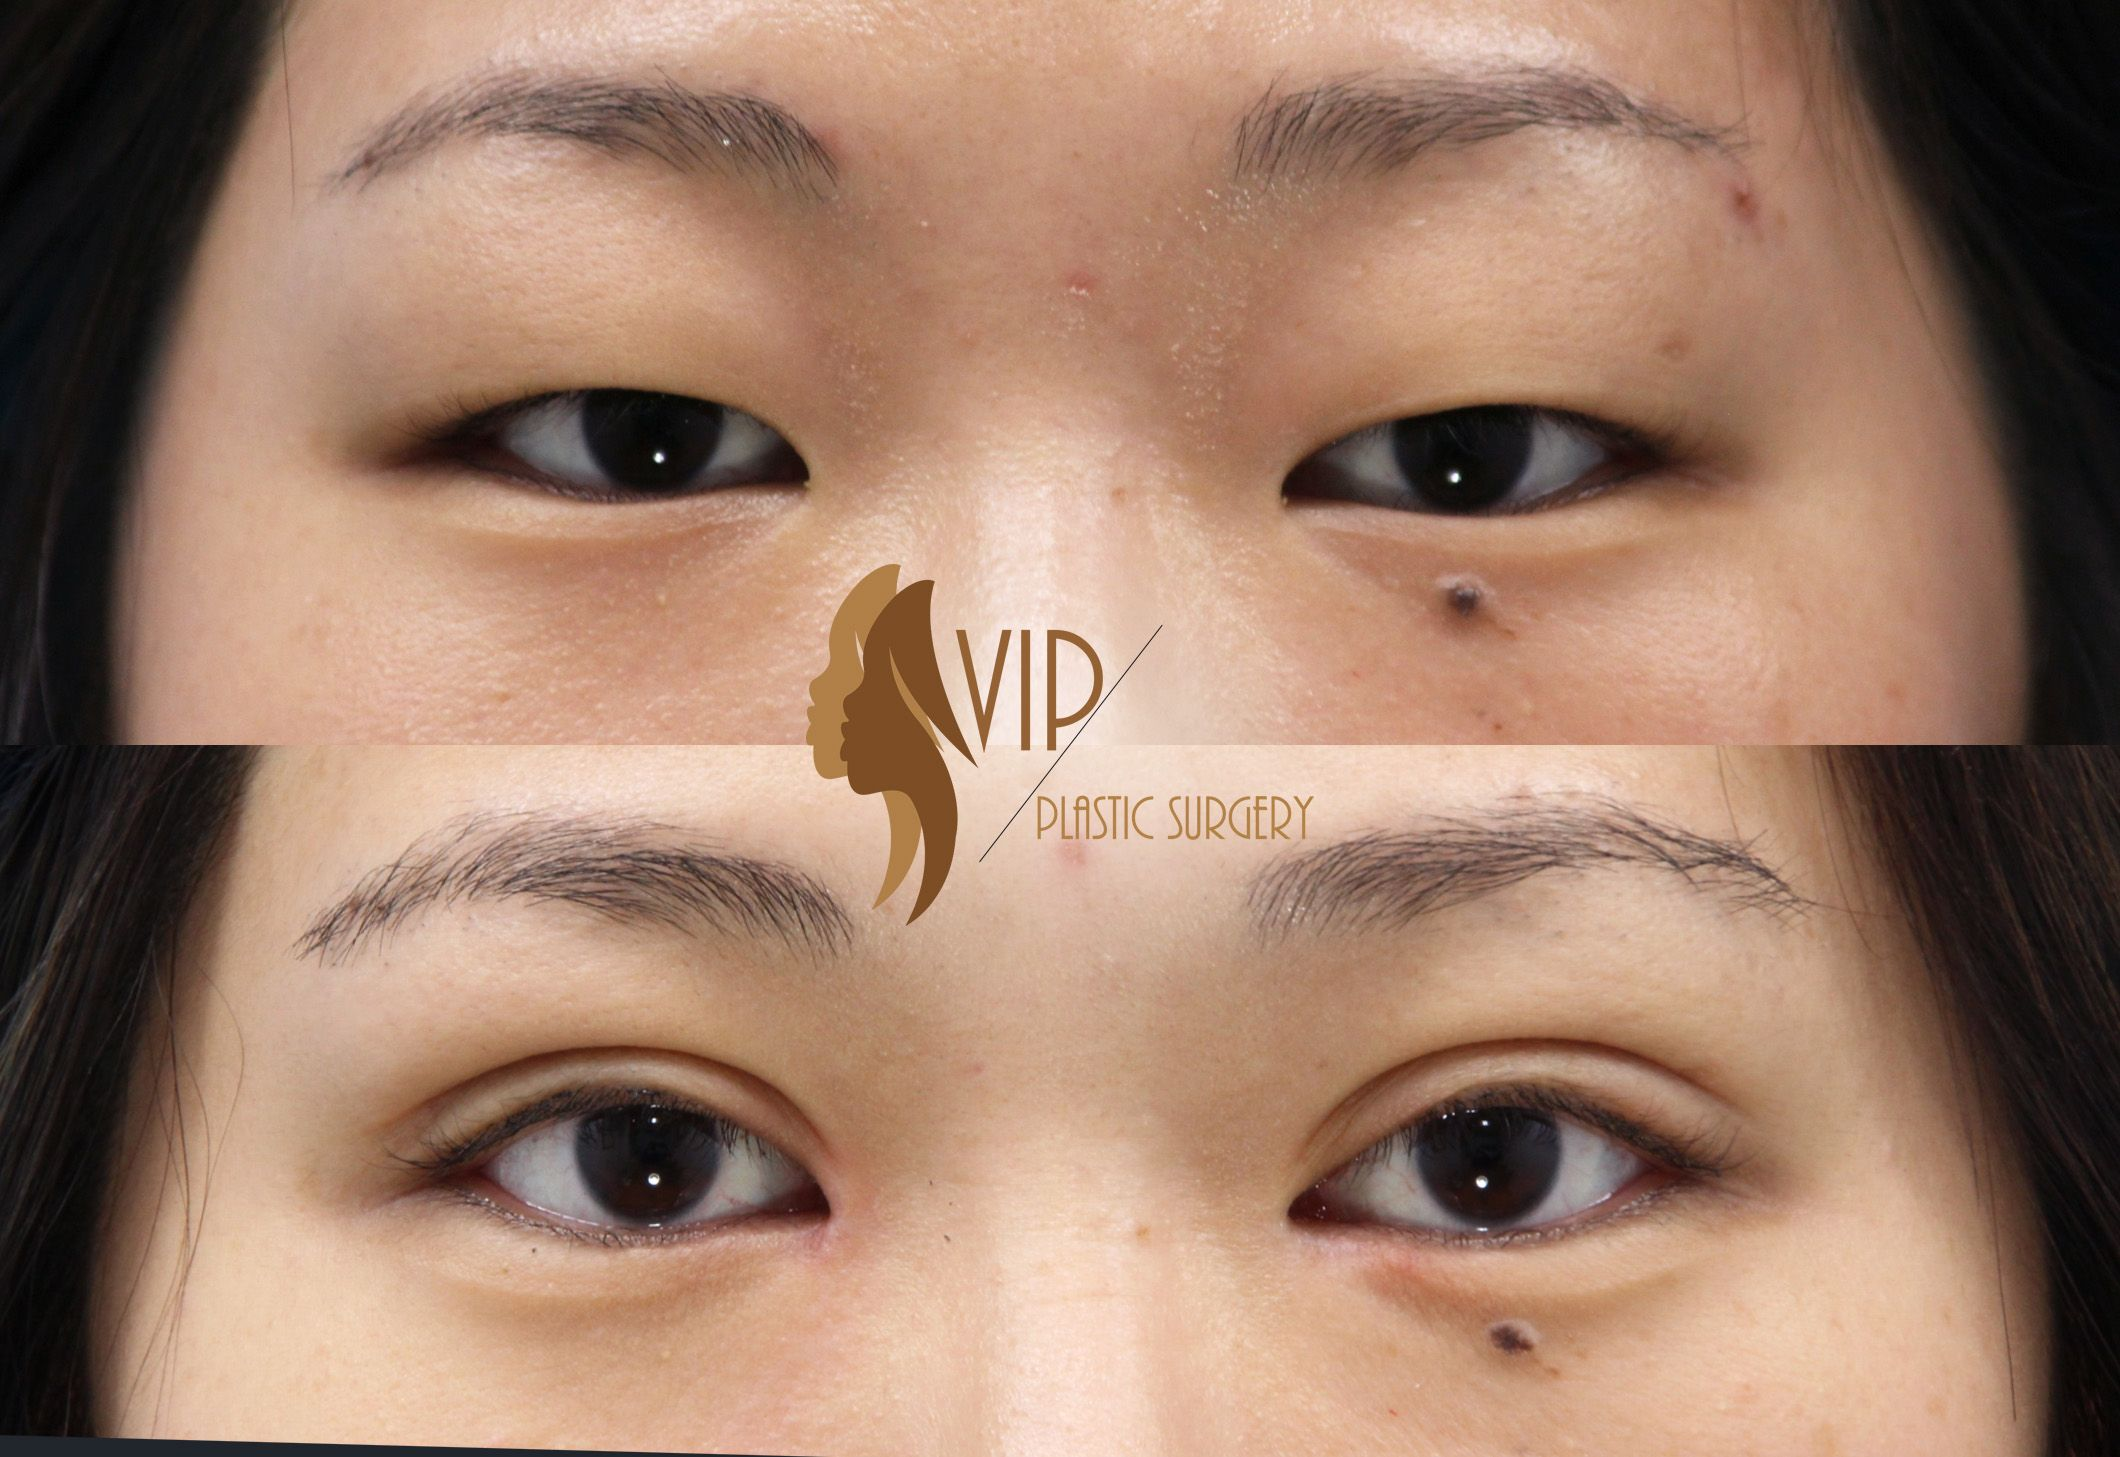 Asian Blepharoplasty (Double eyelid surgery) by VIP